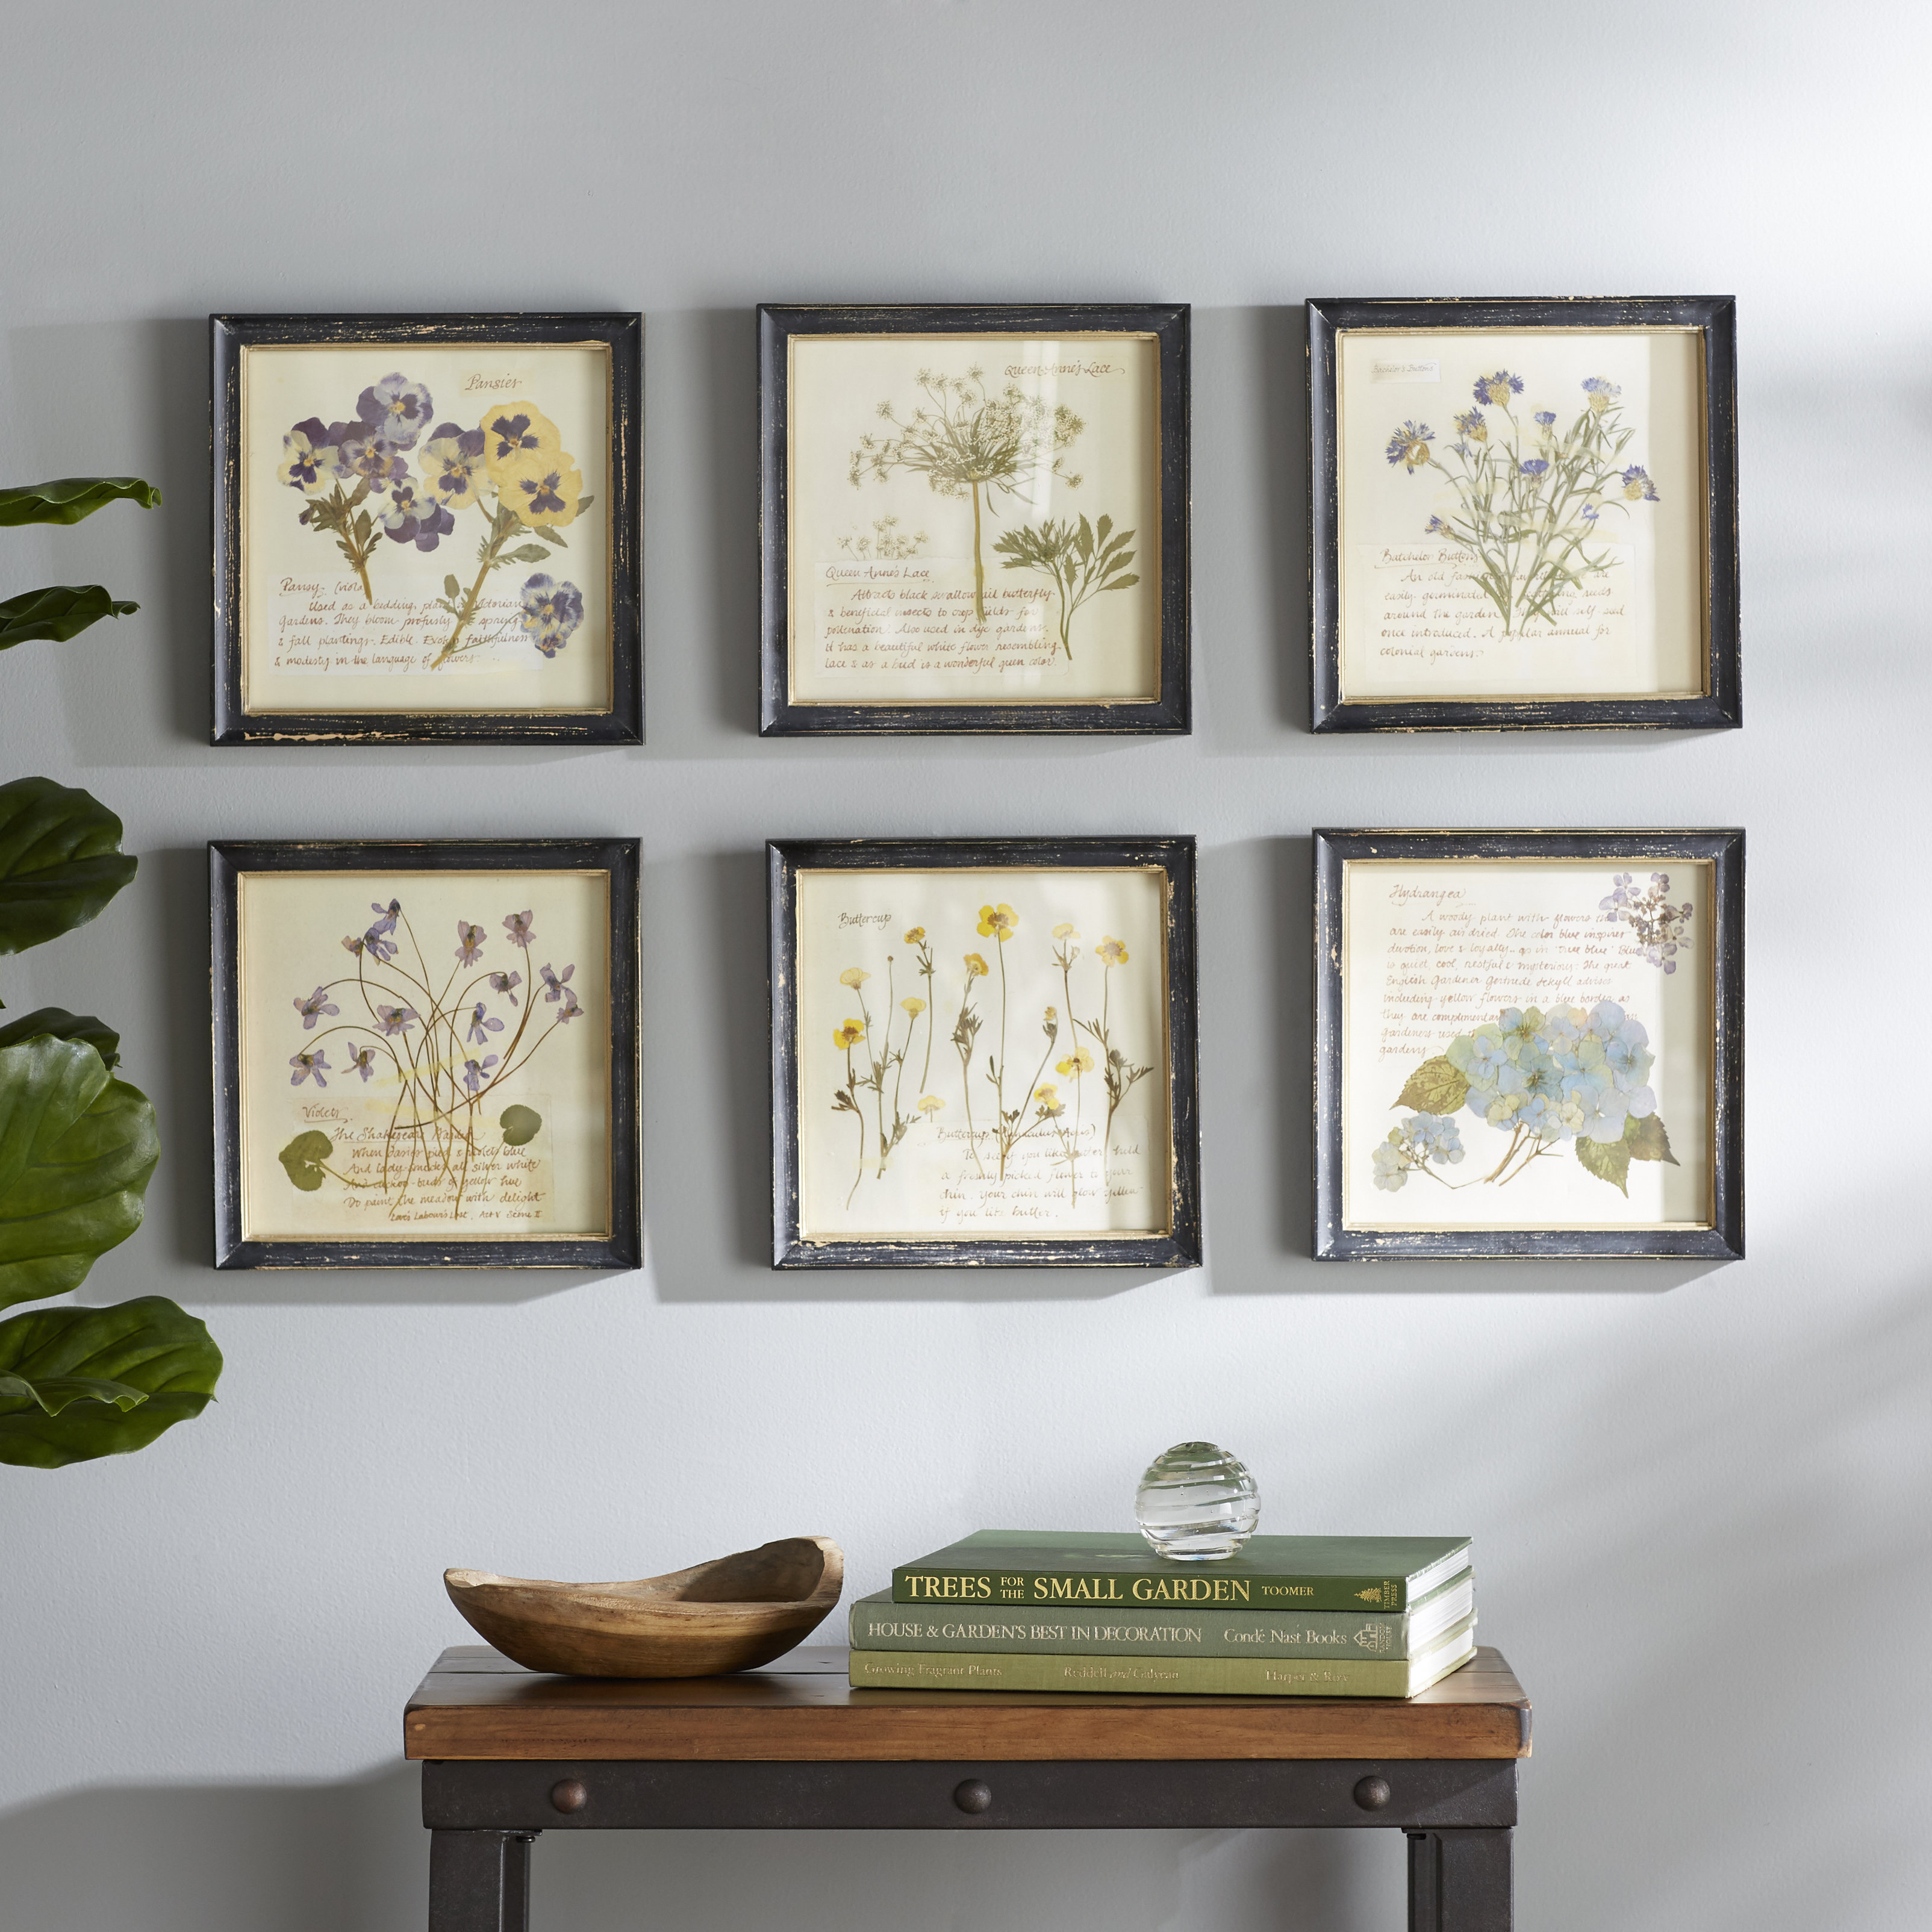 'pressed Flowers' 6 Piece Framed Graphic Art Print Set On Wood intended for 3 Piece Ceramic Flowers Wall Decor Sets (Image 1 of 30)